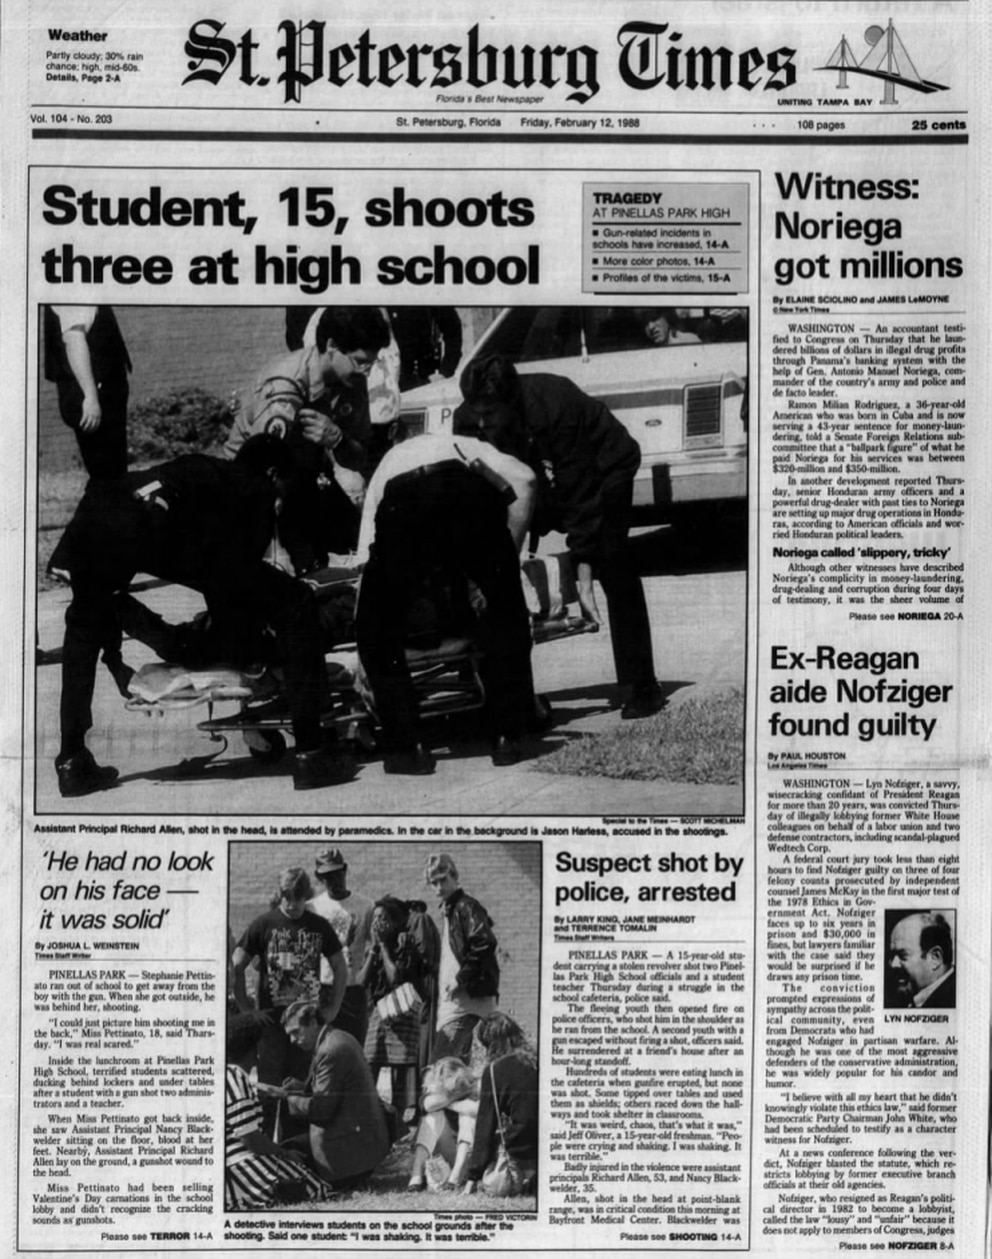 The front page of the St. Petersburg Times on the day after the shooting.